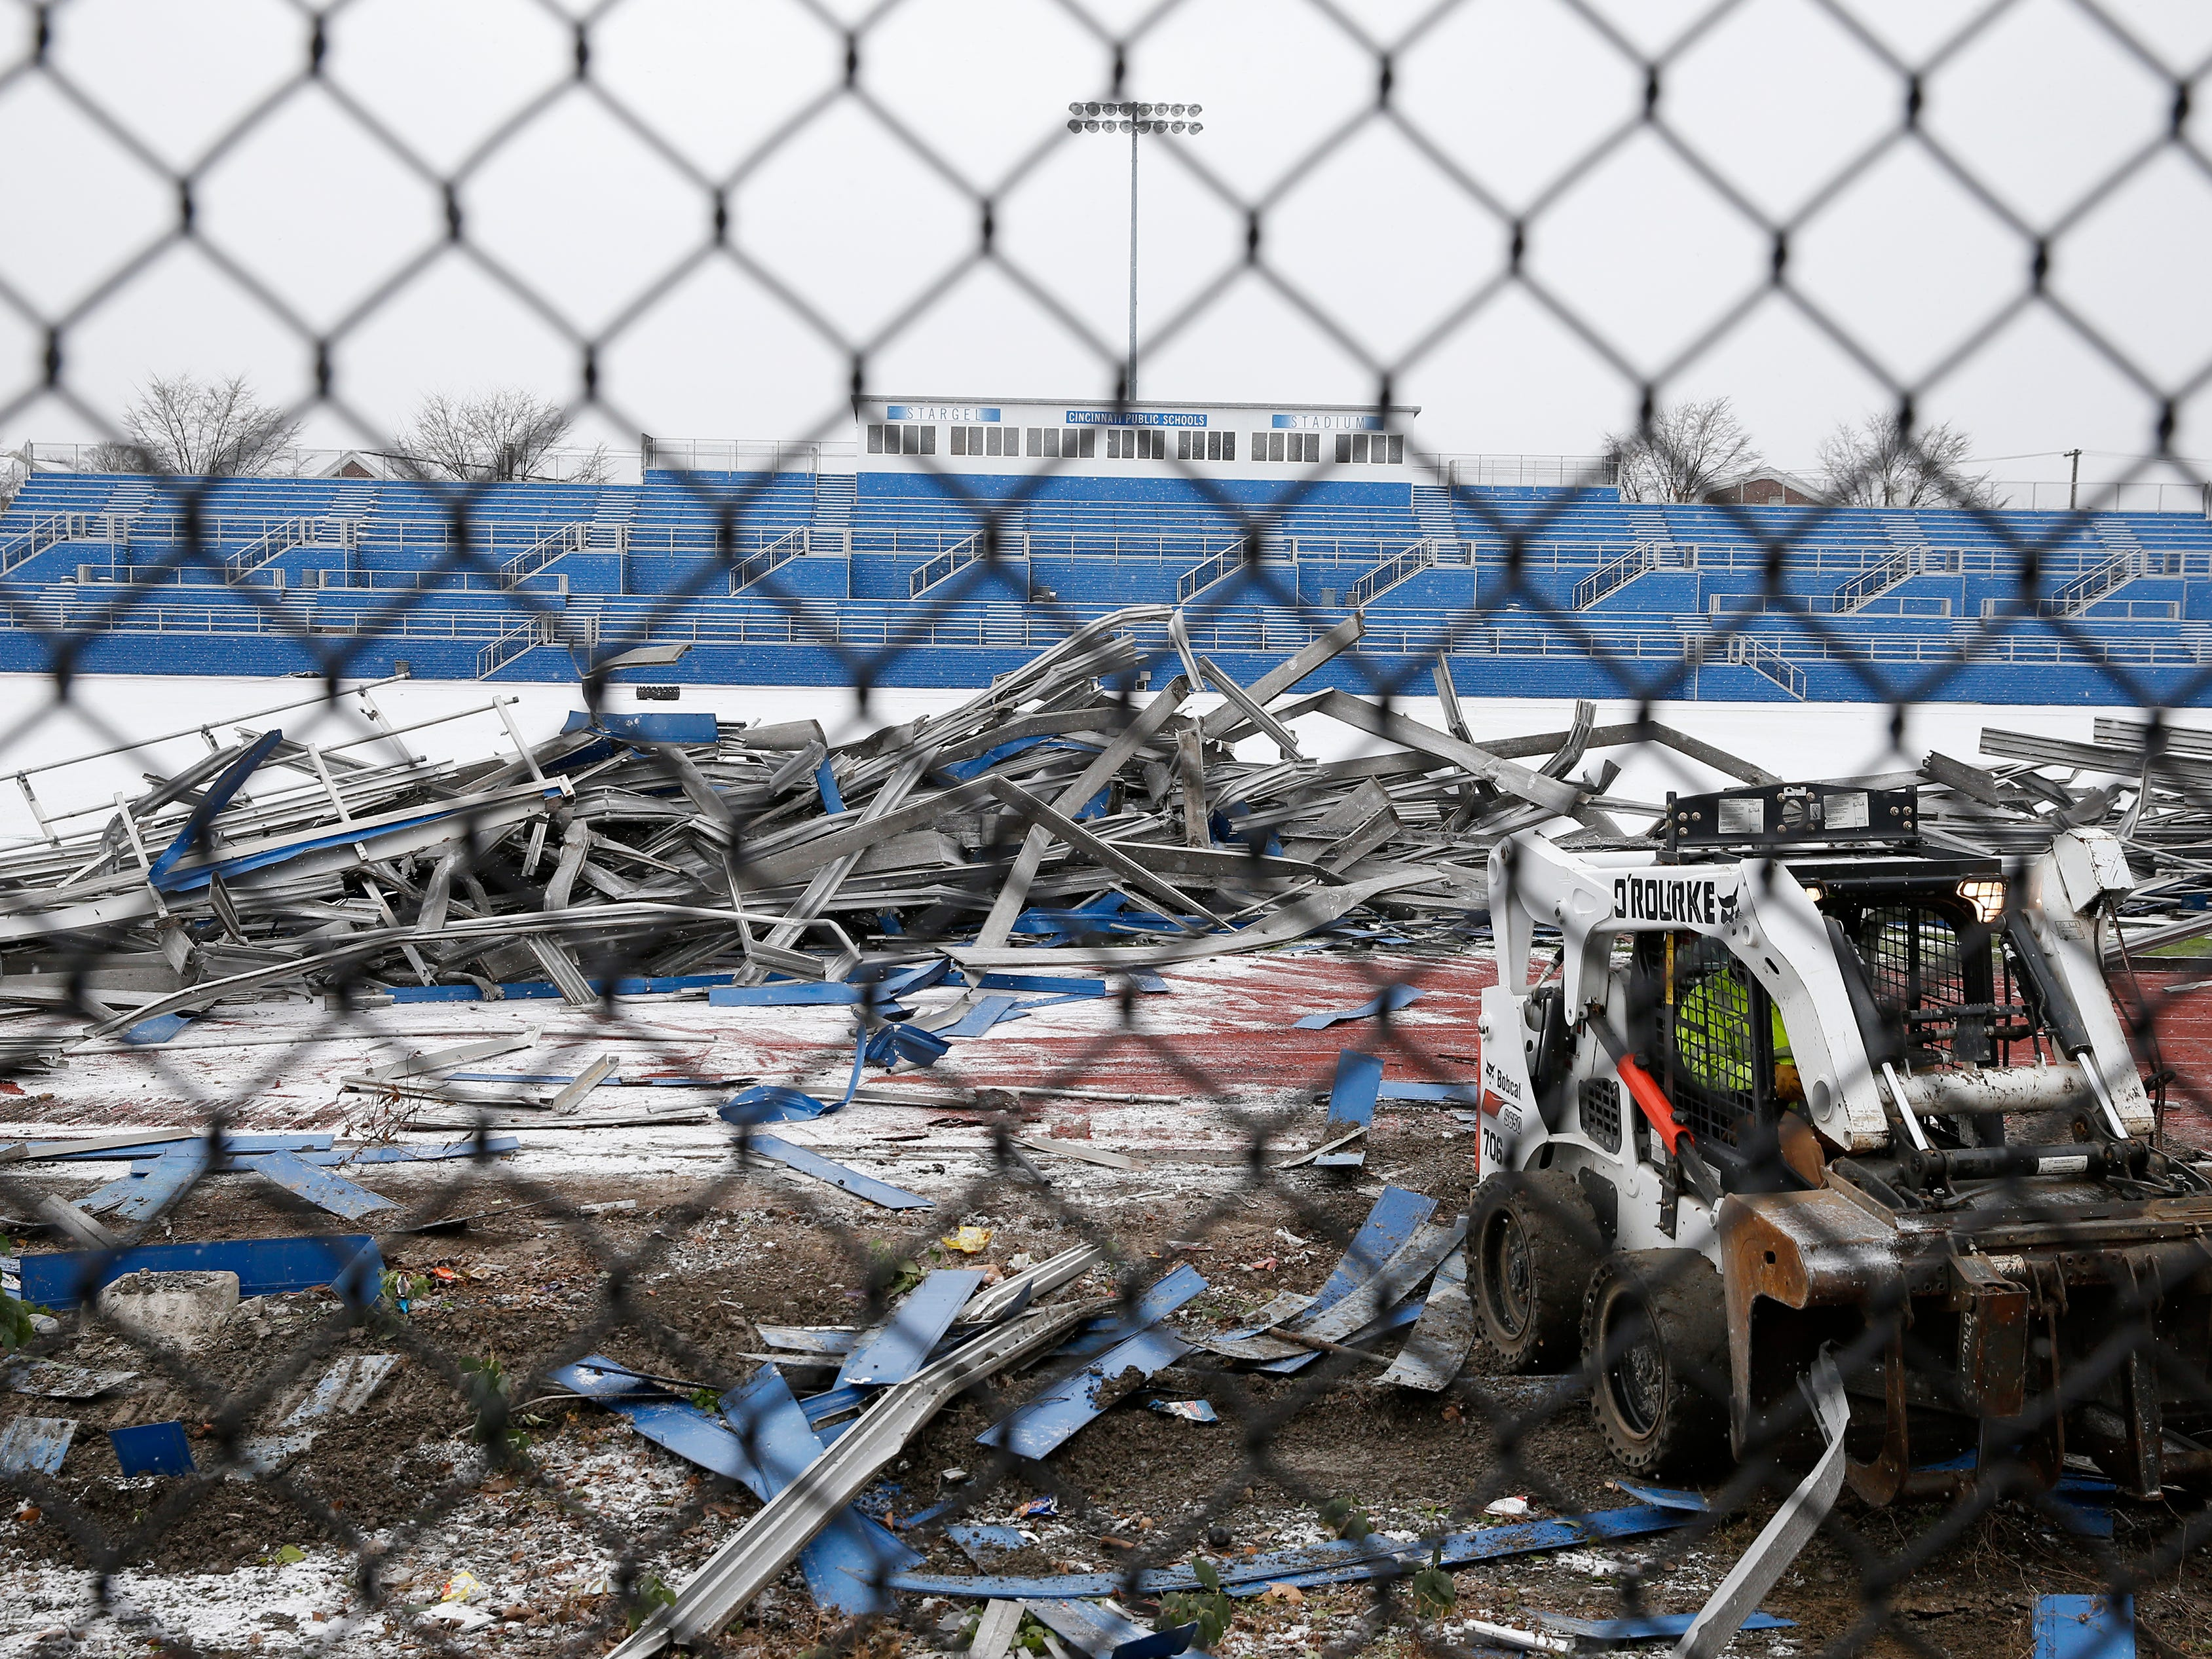 The home bleachers at Stargel Stadium is all that remains Tuesday morning as the visitor's bleachers are torn down to make way for the FC Cincinnati stadium in the West End.